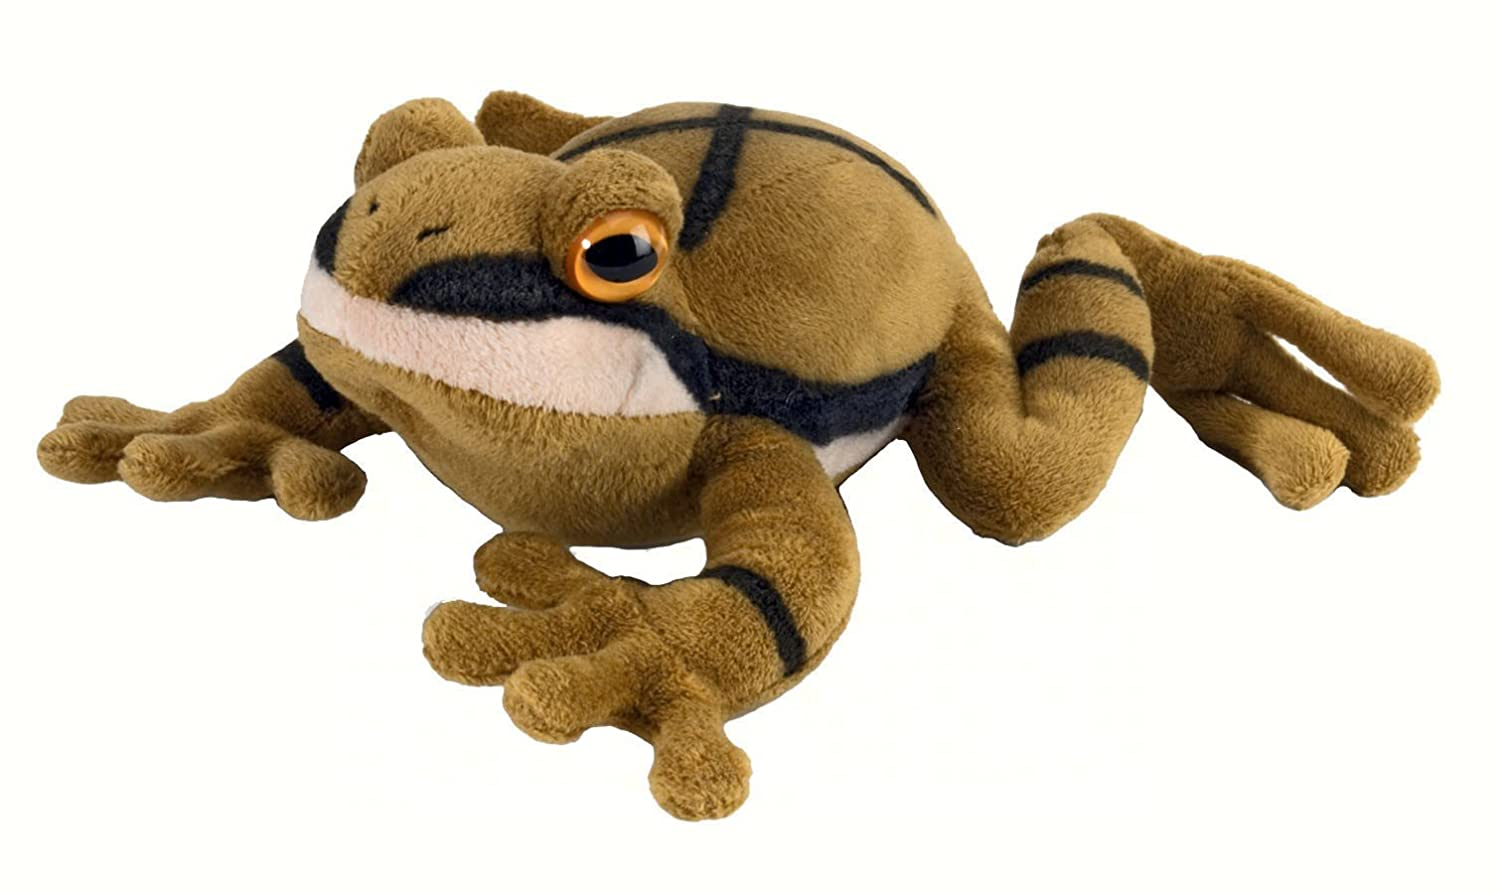 Amazon.com : Spring Peeper Frog With Sound Soft Toy : Garden & Outdoor